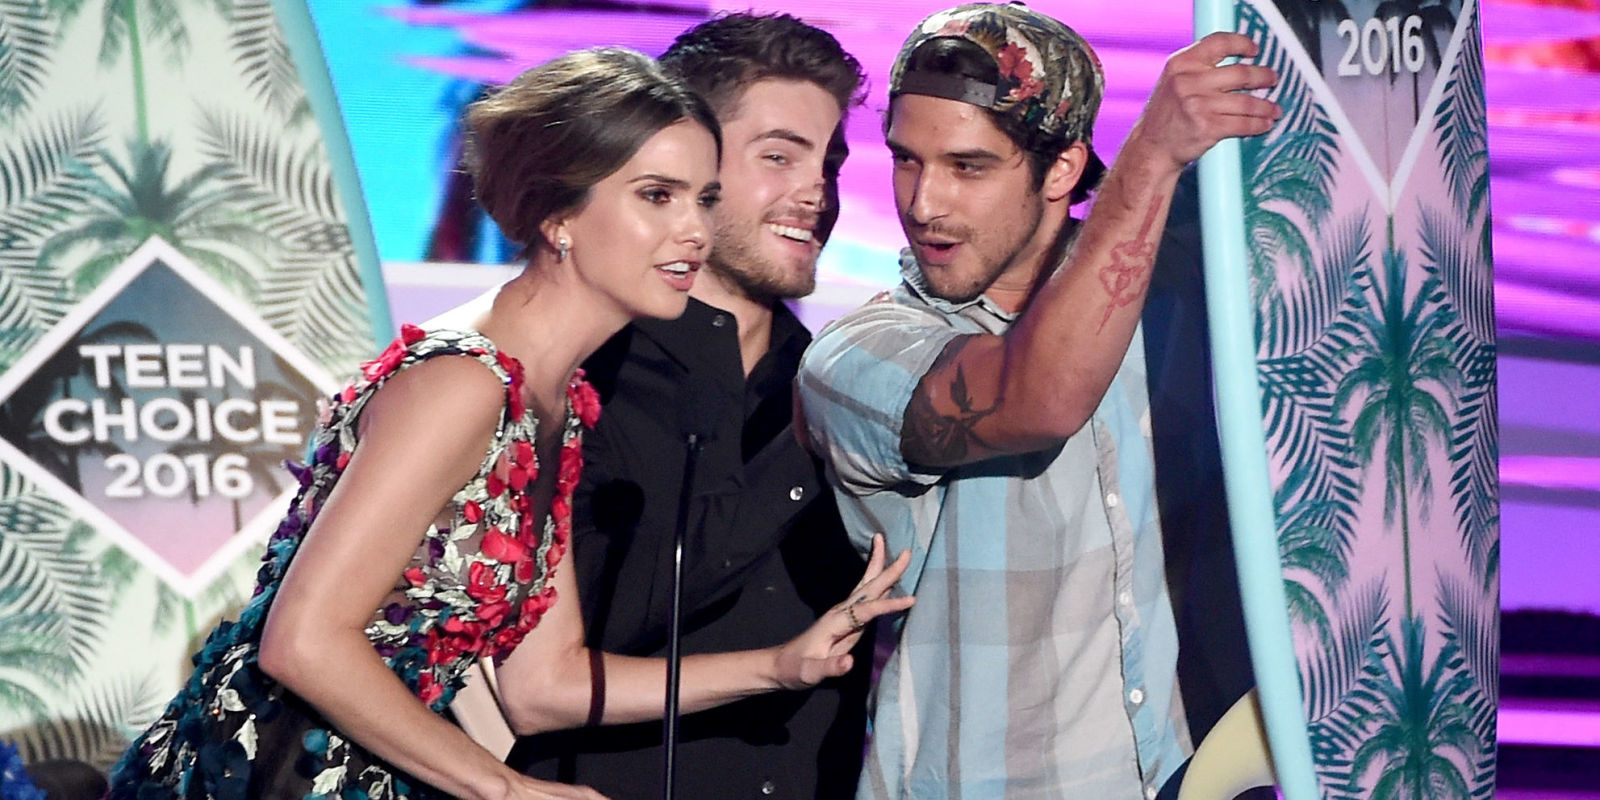 Lily Pulitzer Starbucks Are The Teen Choice Awards Rigged Shelley Hennig Teen